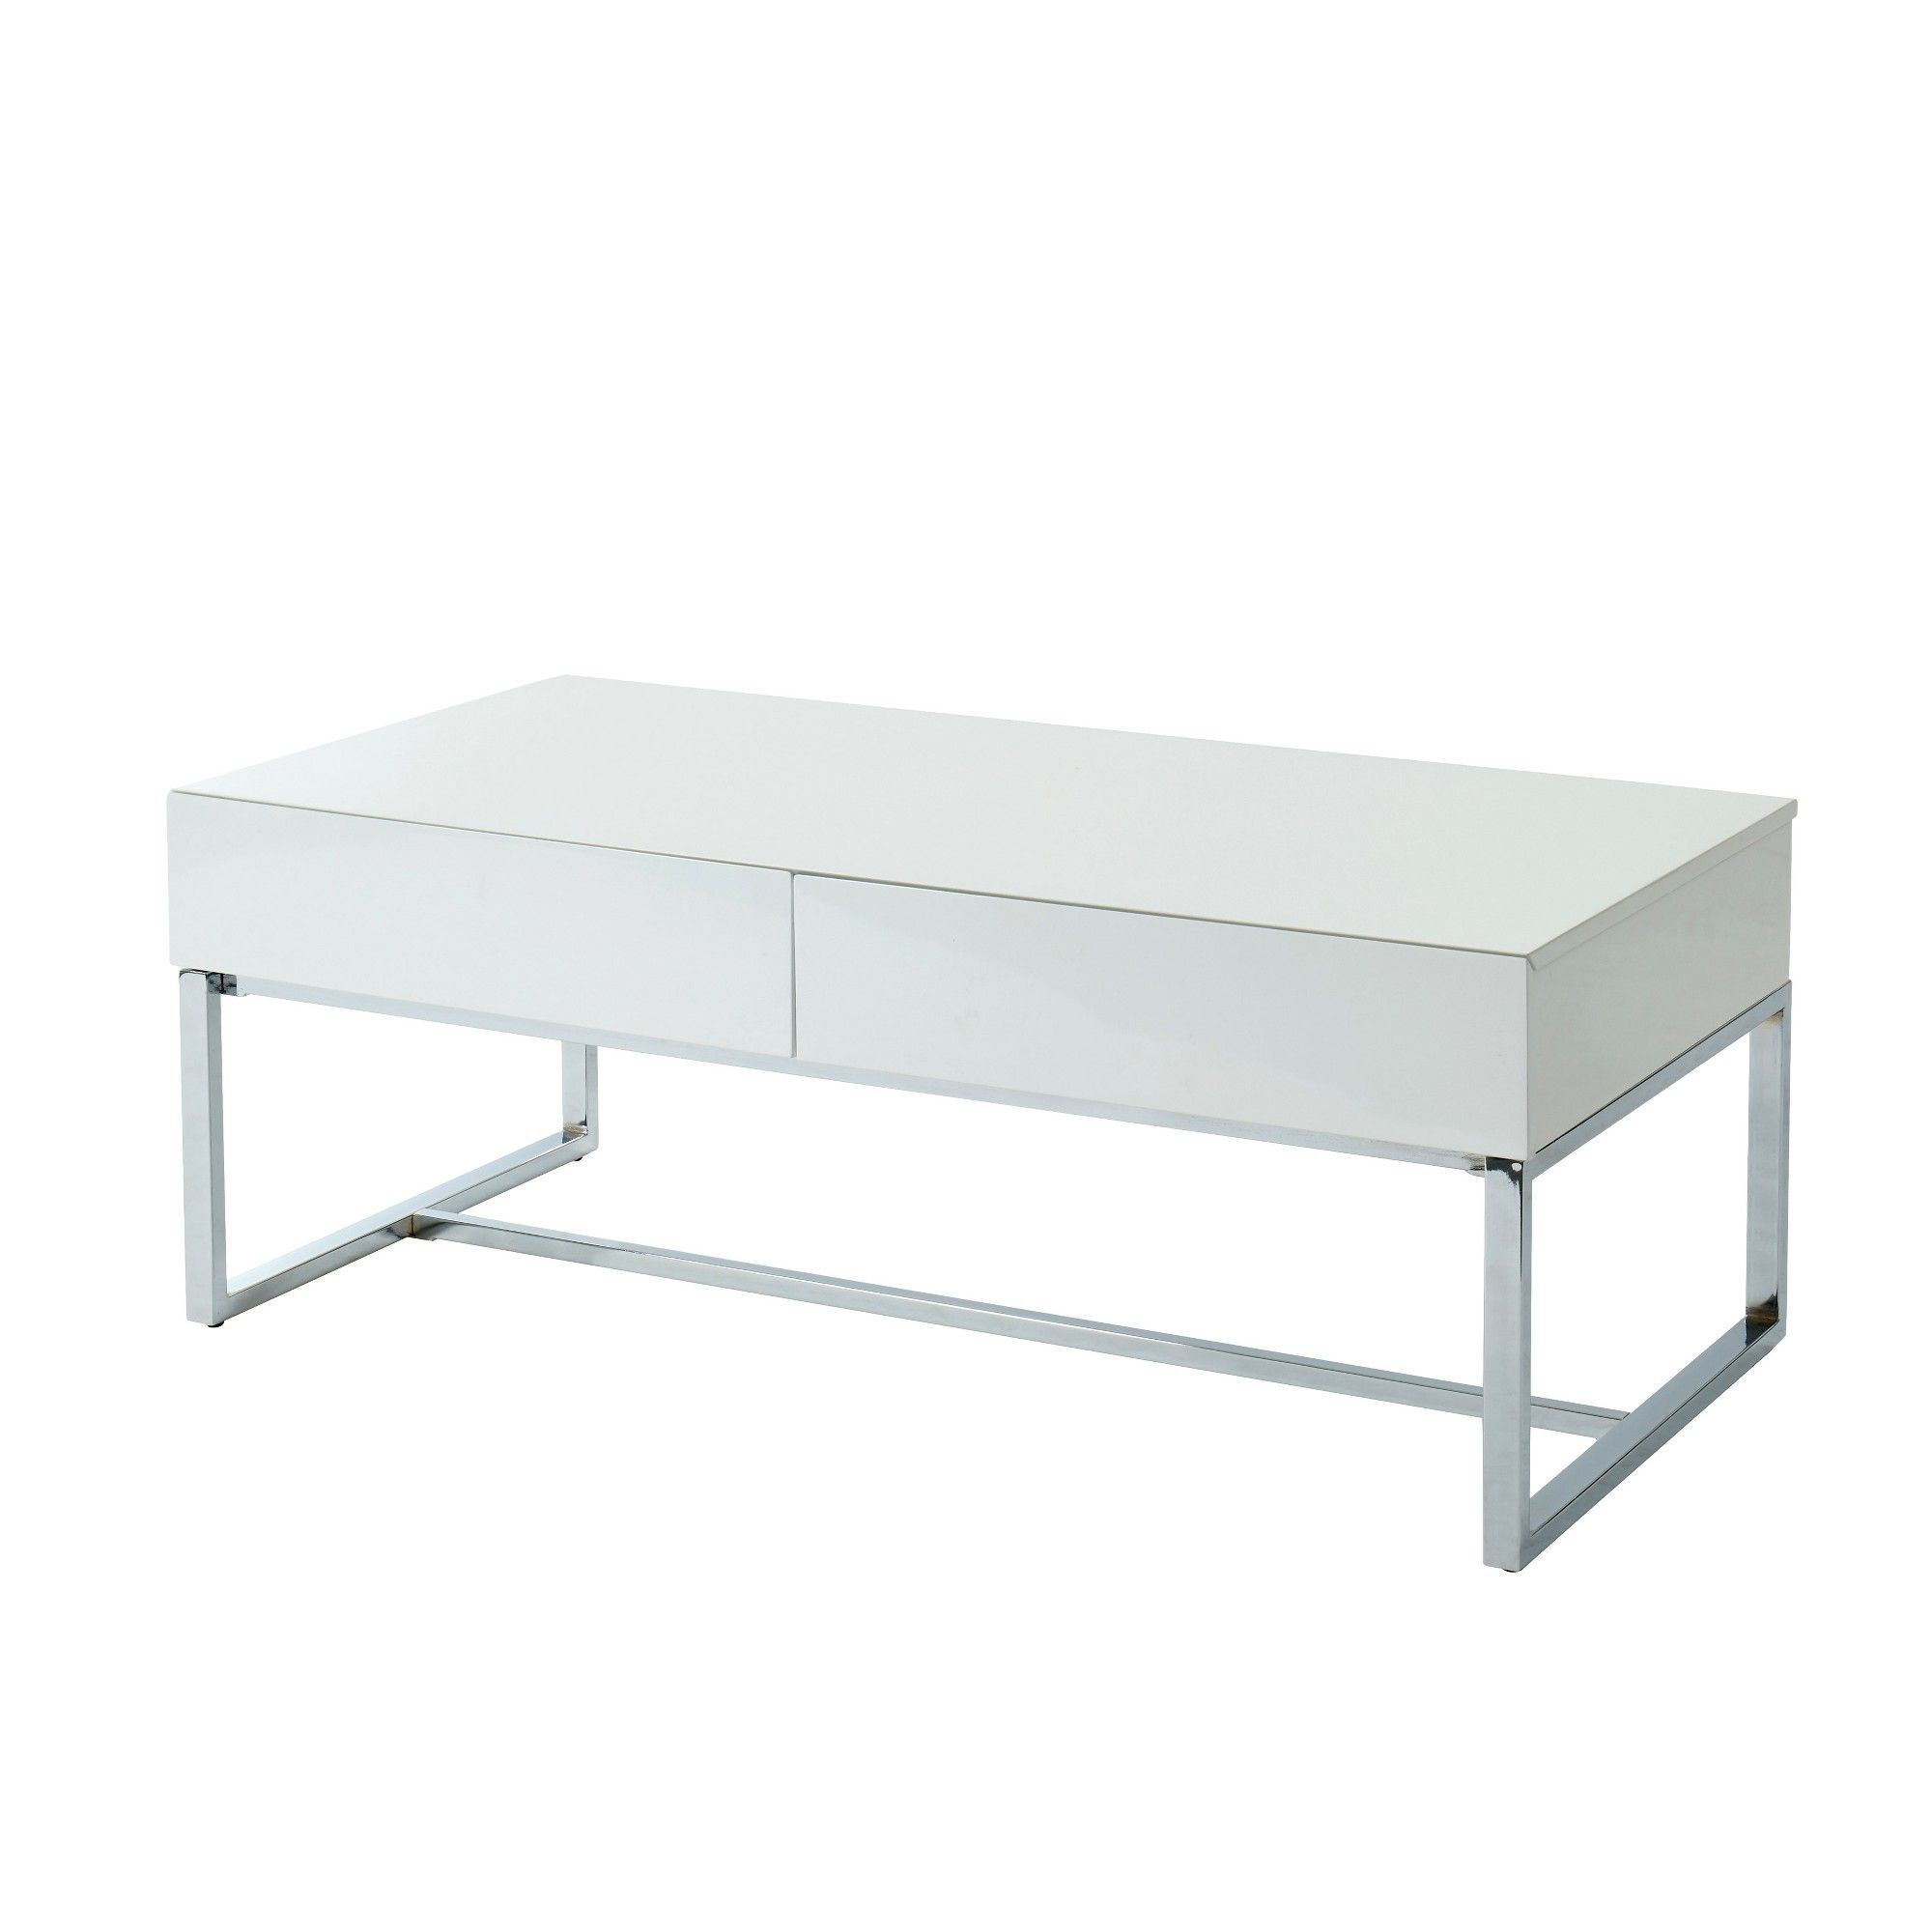 Coffee Tables Winter White Homes Inside Out In 2020